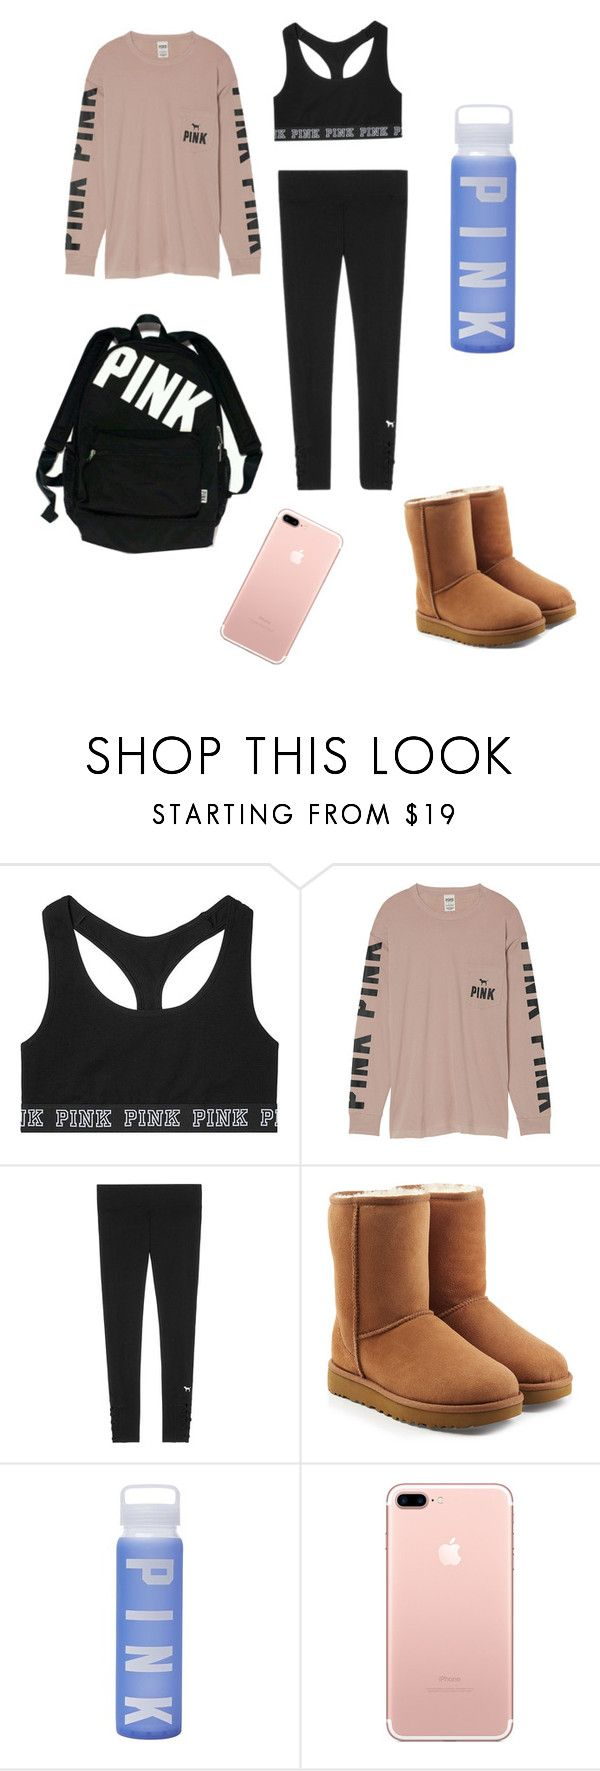 """Cute Sporty School Outfit"" by makeupisnatural ❤ liked on Polyvore featuring Victoria's Secret, UGG, school, ugg, Victoriasecret and VictoriaSecretPink"